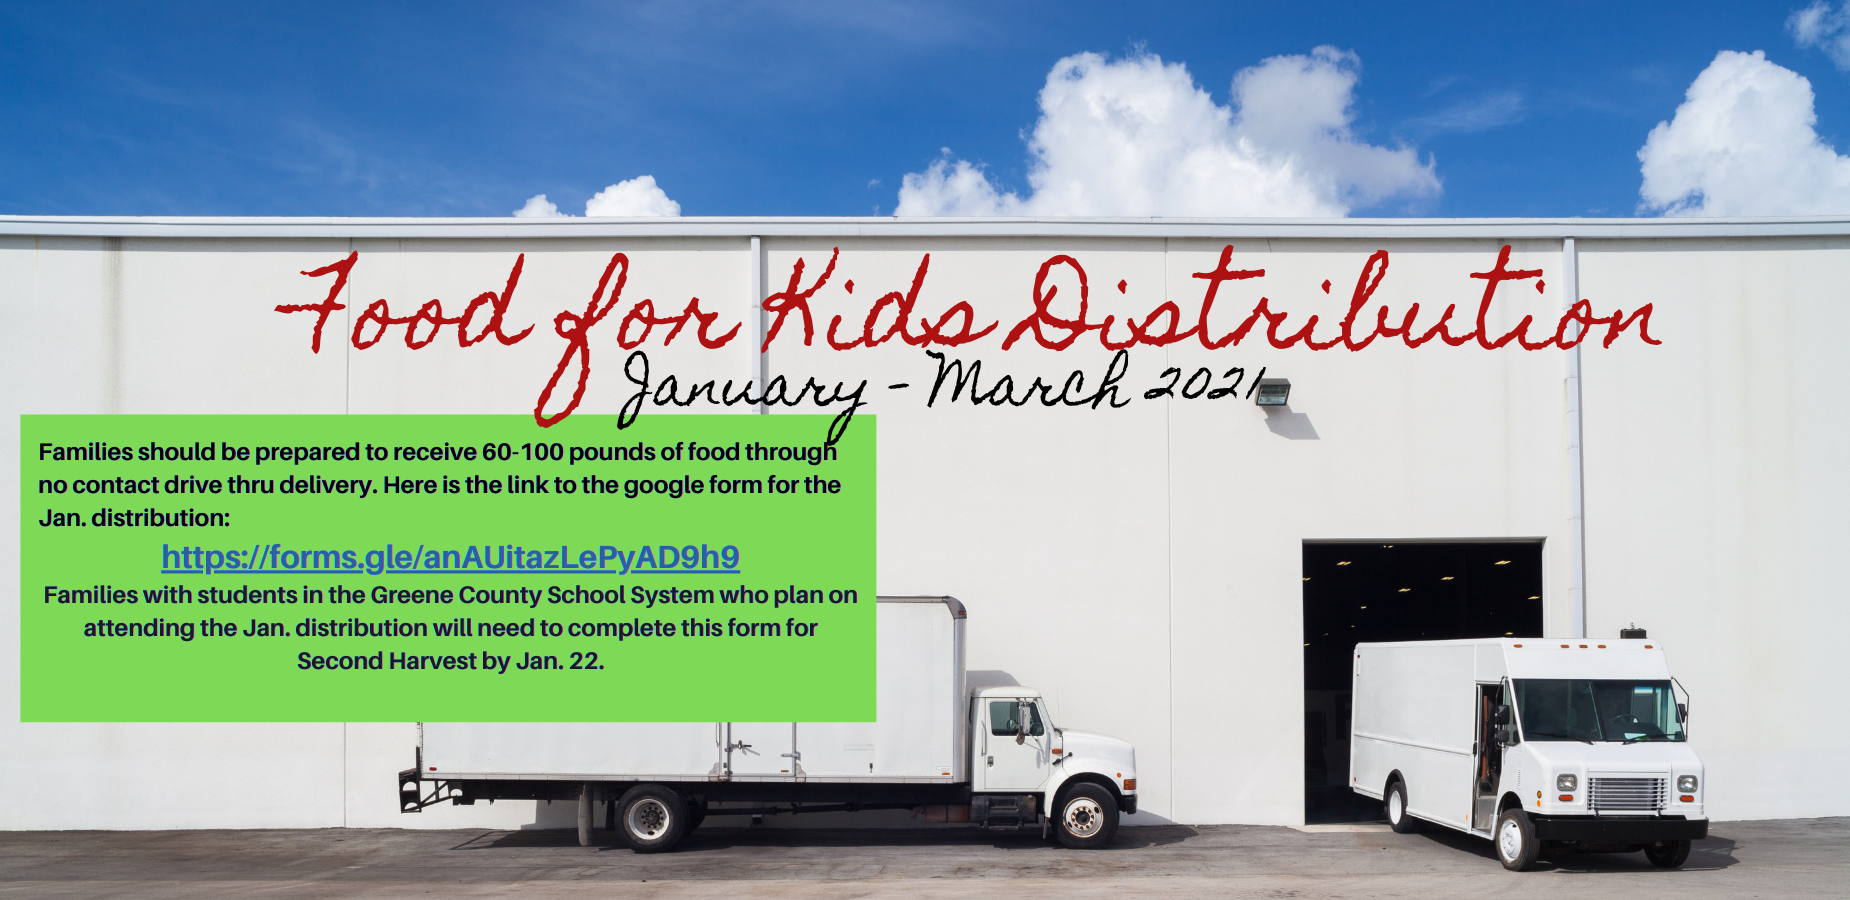 Food for Kids Distribution - Jan. - March 2021